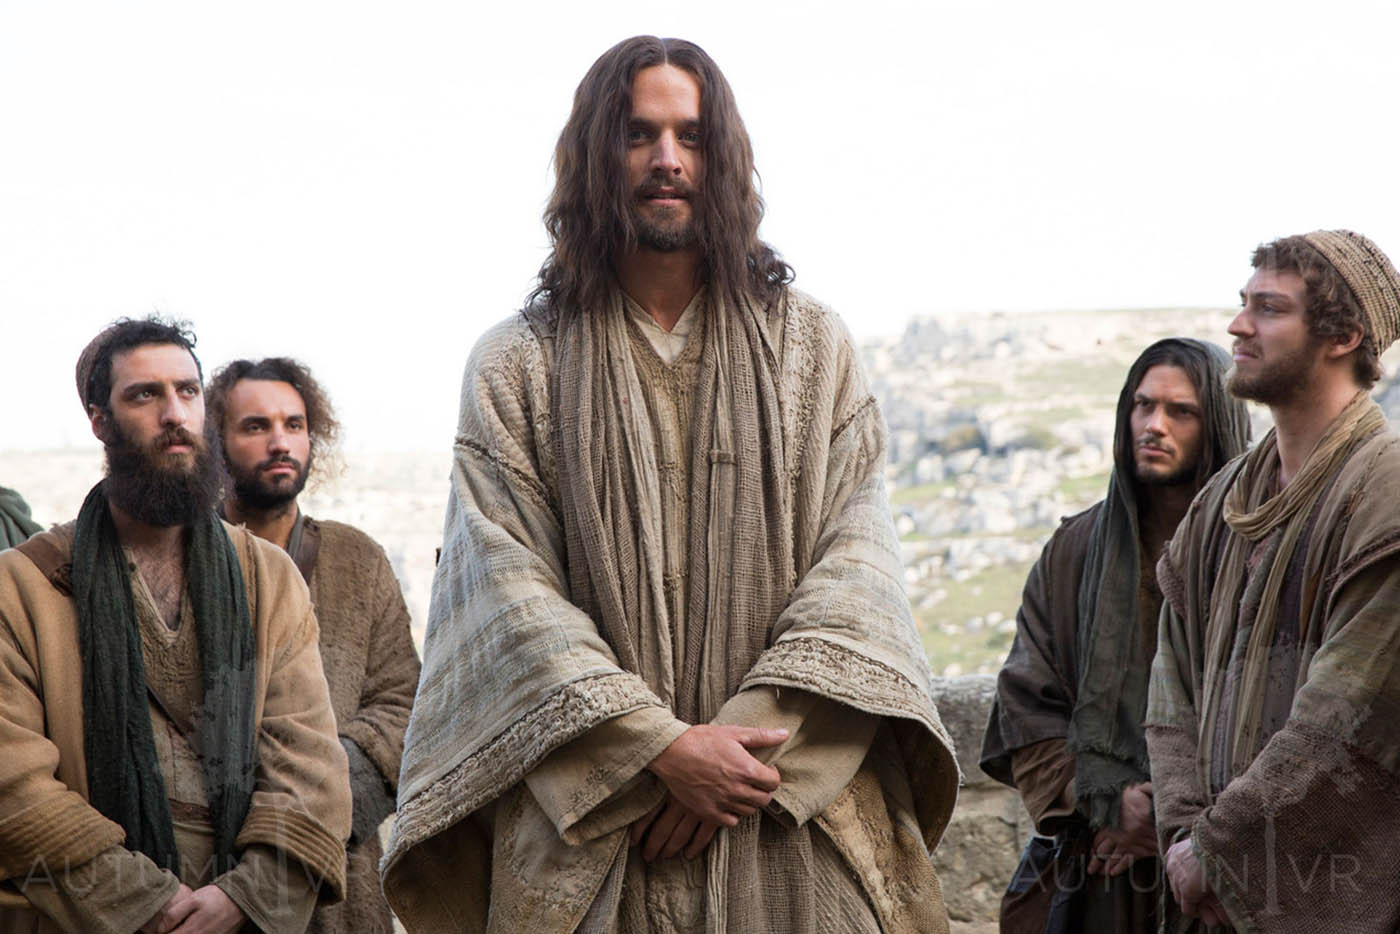 Jesus VR - The Story of Christ: una scena del film